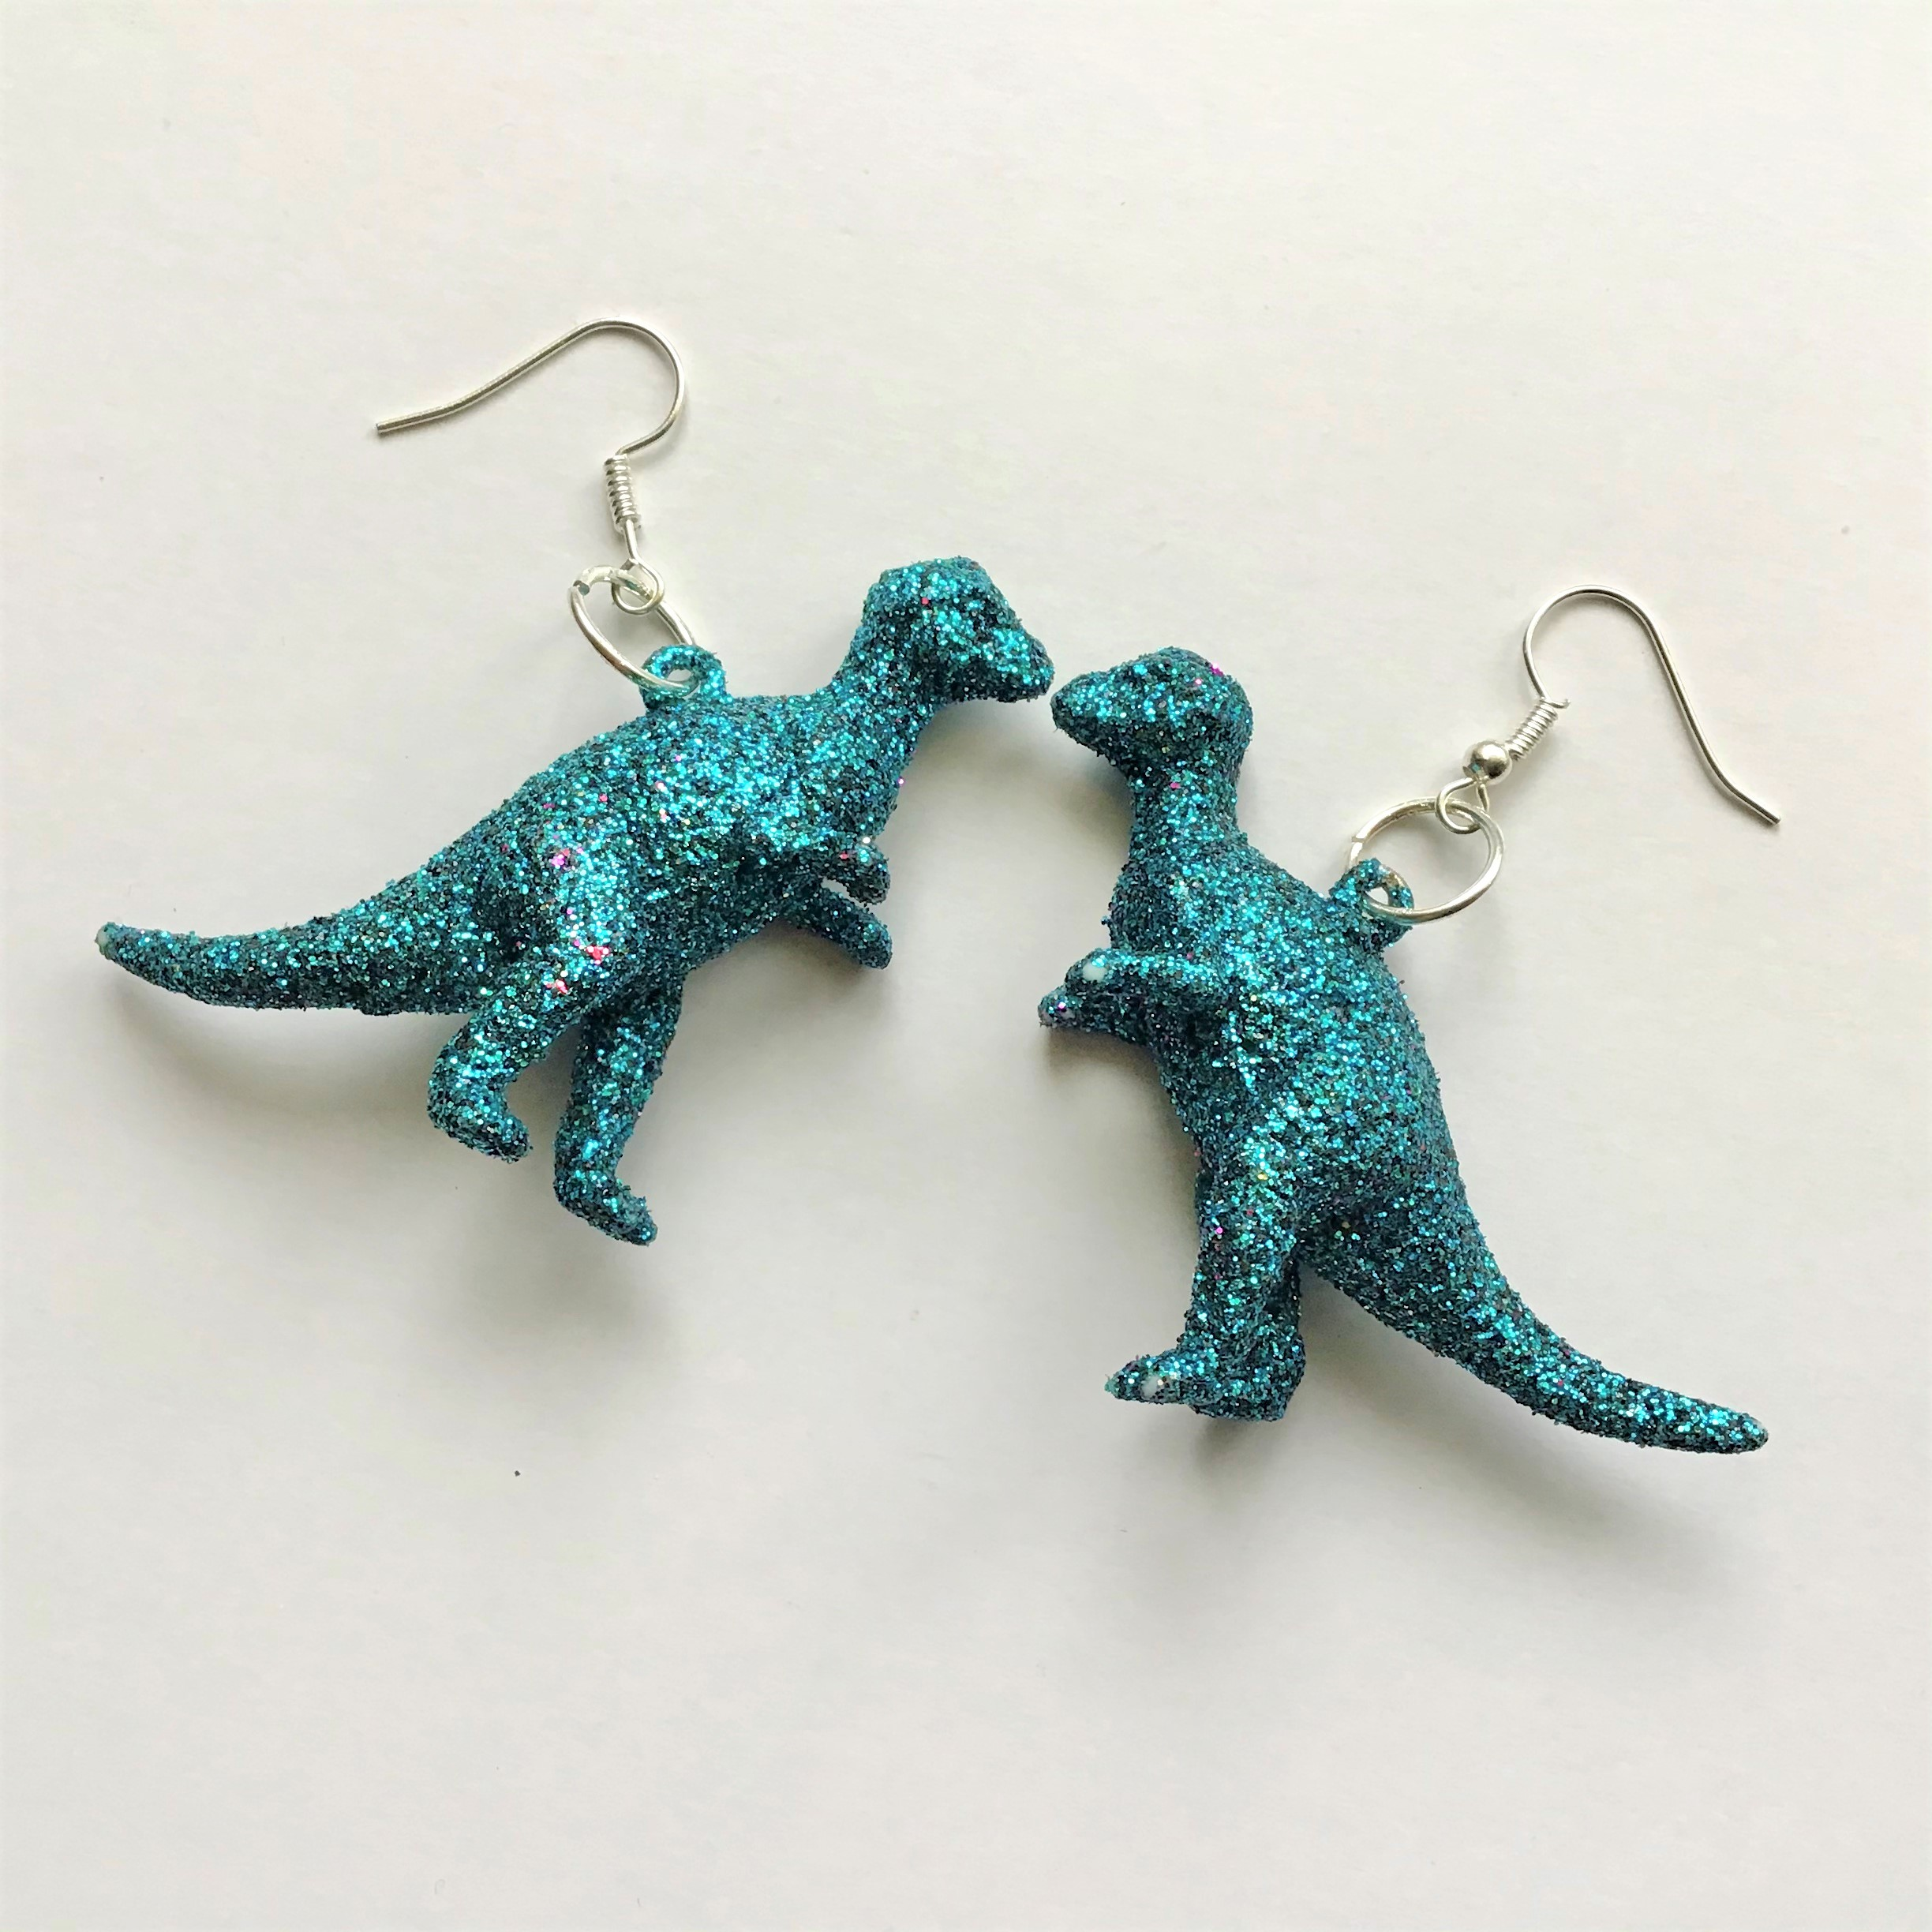 Glitter Dinosaur Earrings DIY - Finished T-Rex